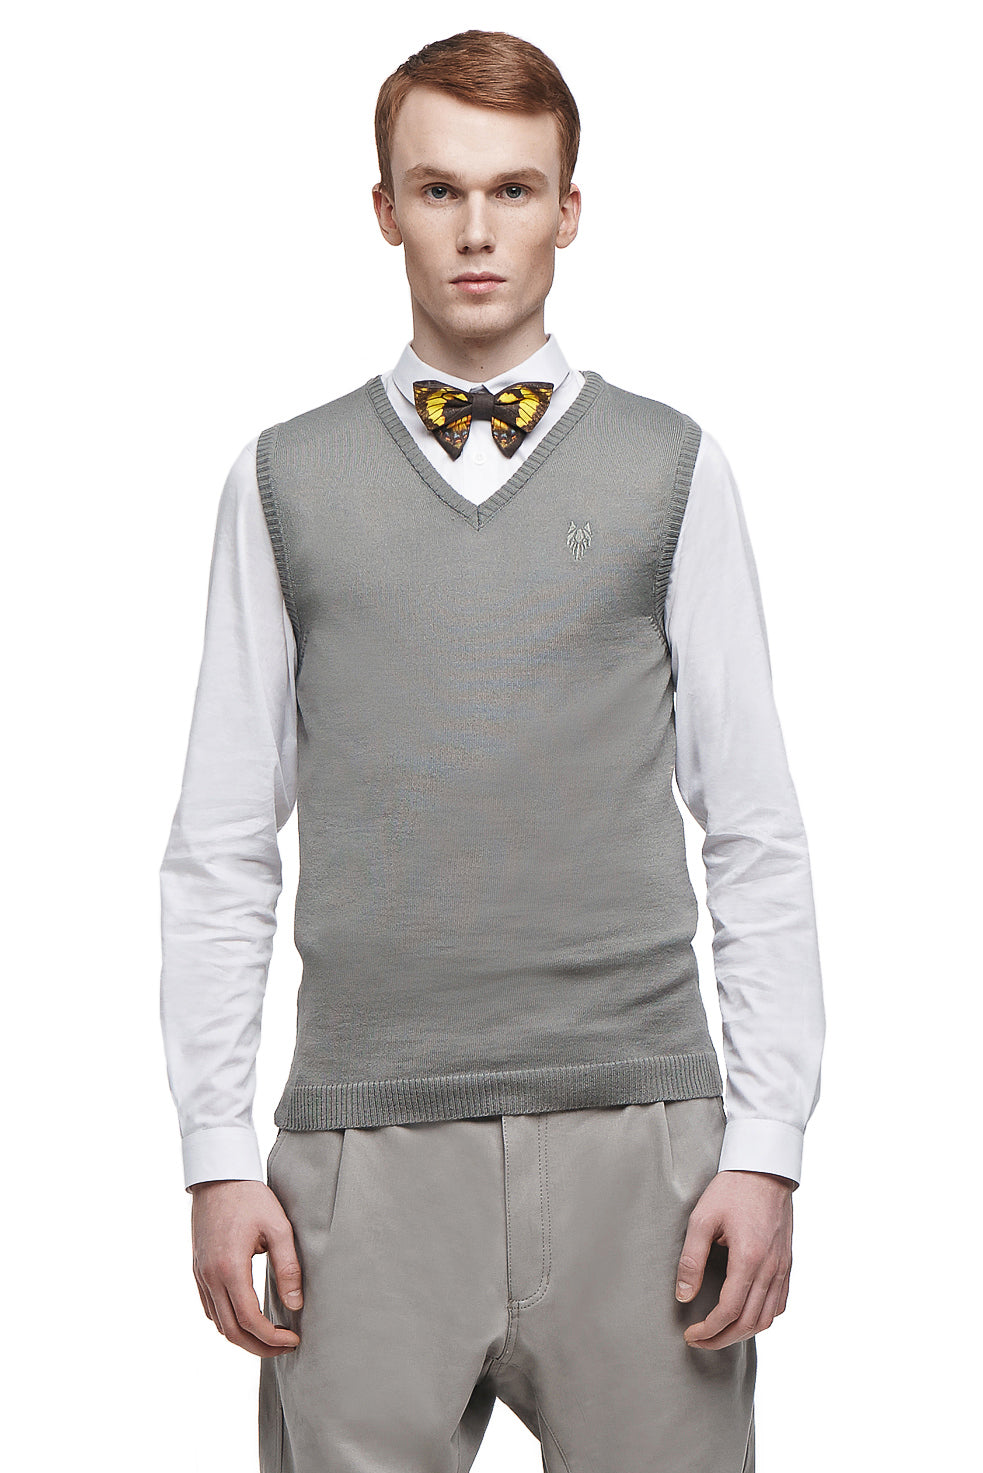 LEMAIRE Knitted Waistcoat - One Wolf